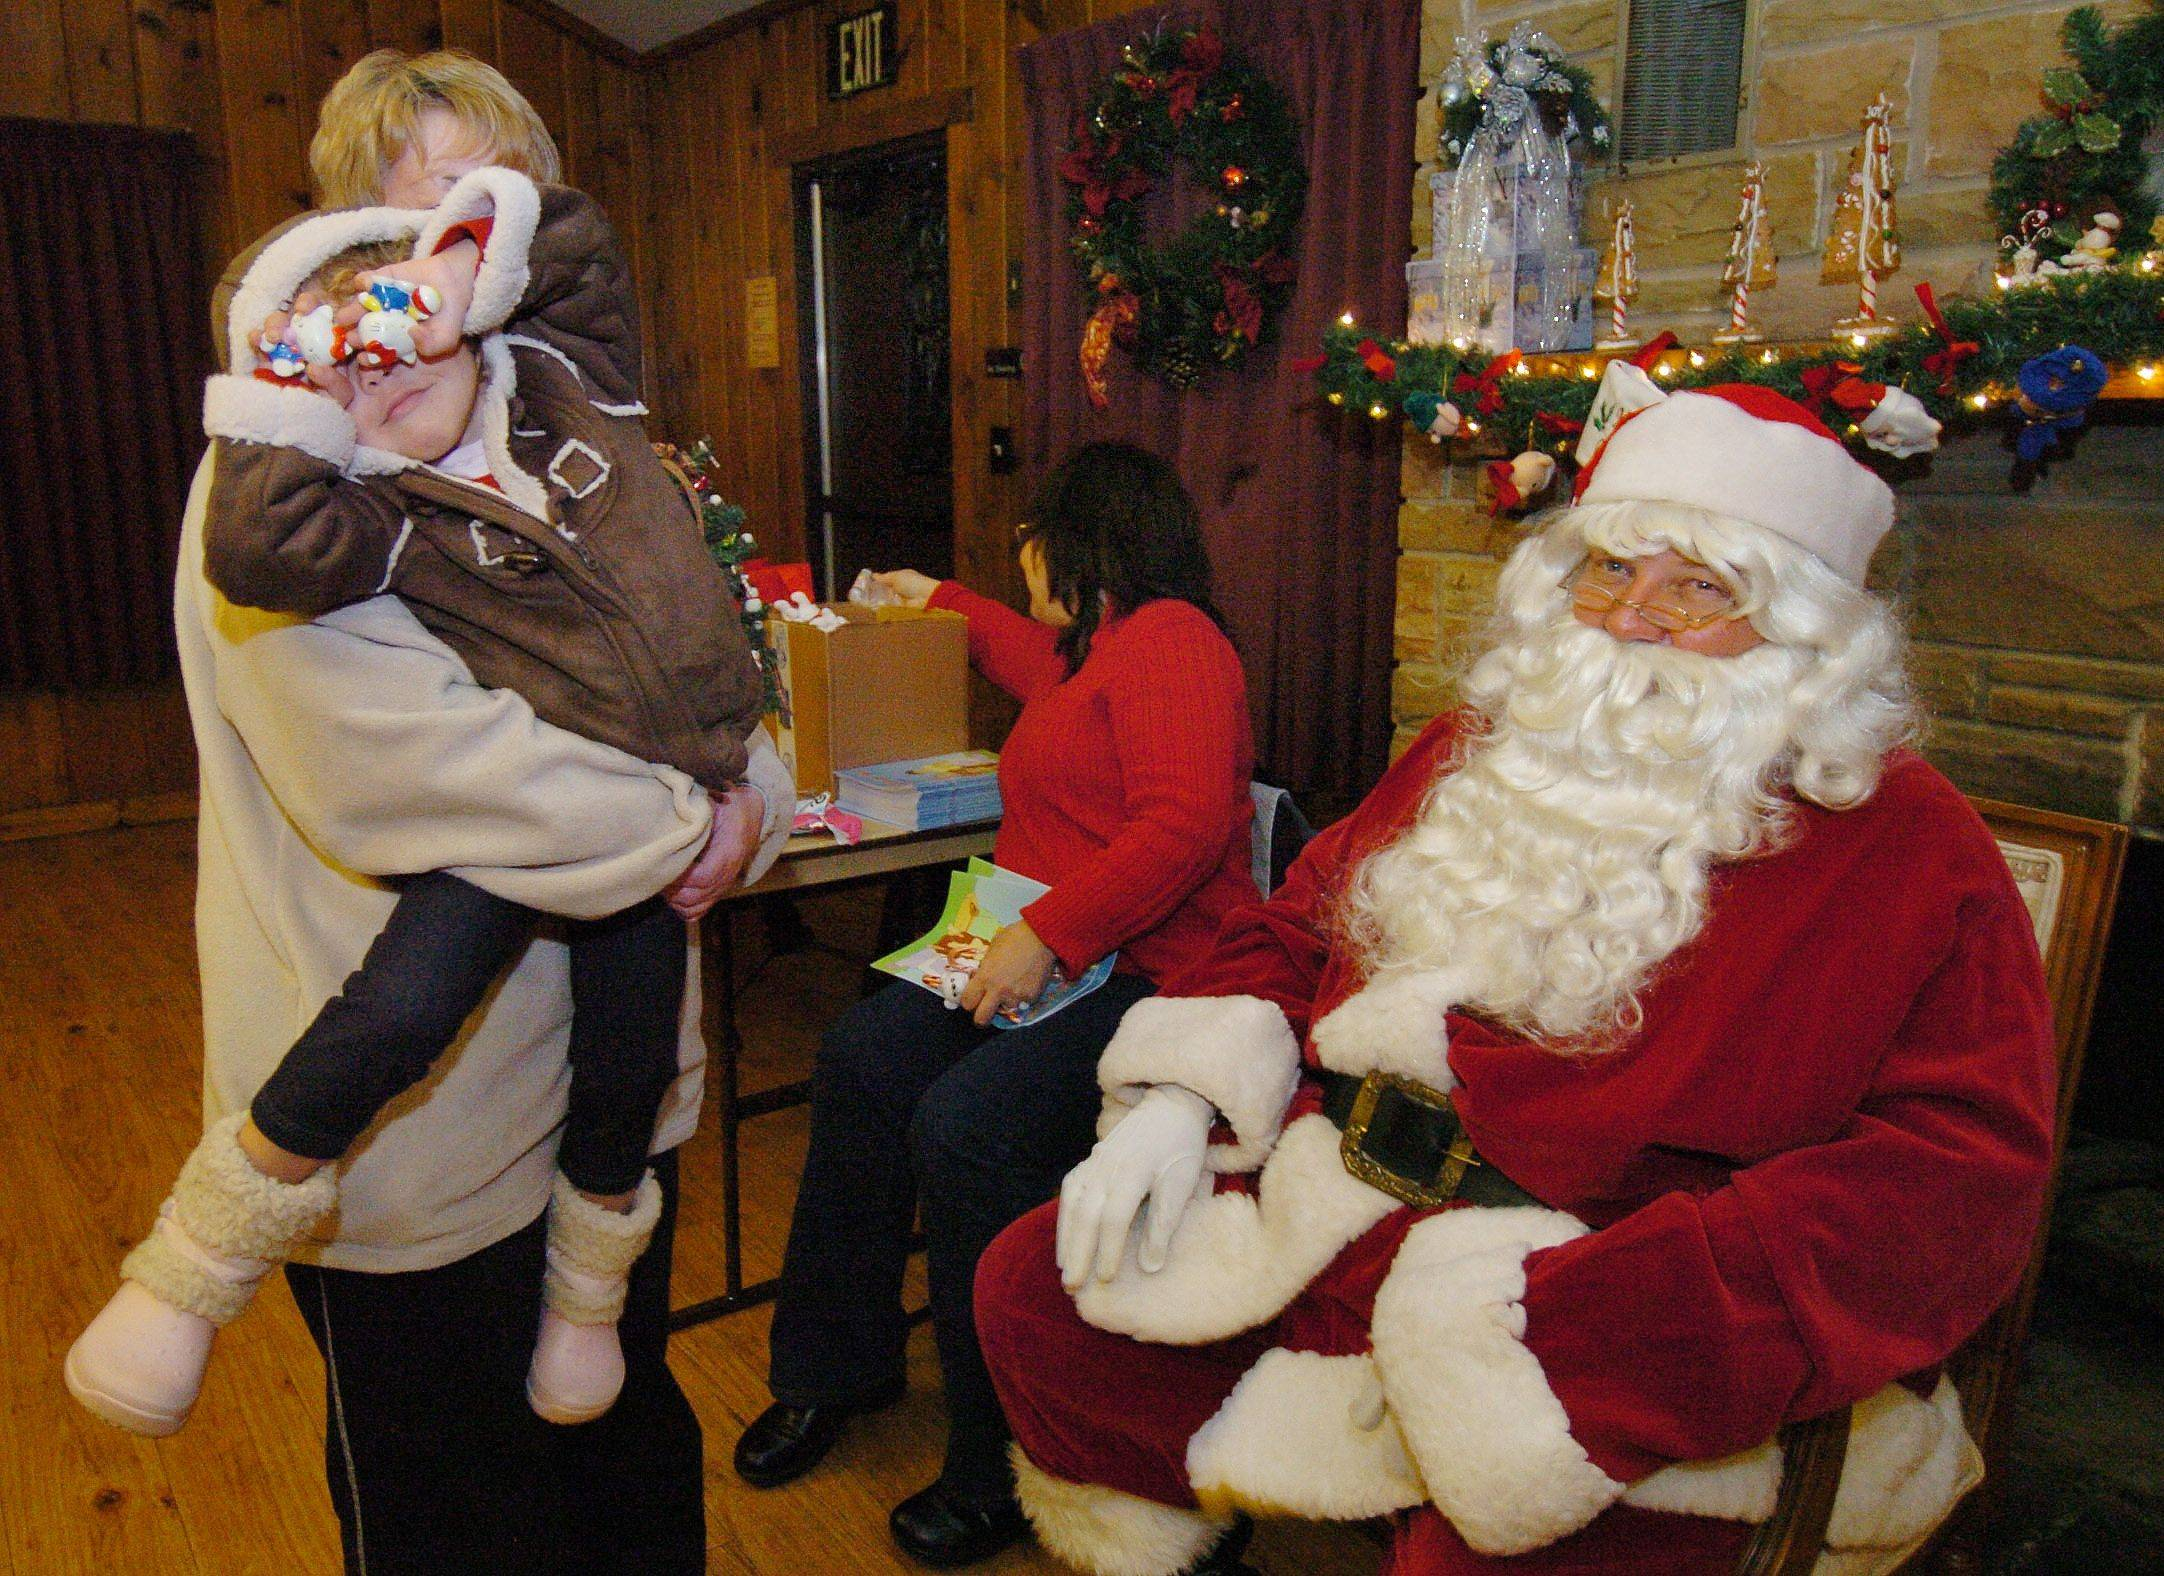 Three-year-old Janissa Bauer has a problem relating to Santa to the point of shielding her eyes, while being held by her grandmother Barbara Bauer, in the log cabin prior to Christmas tree lighting in Bartlett Park.